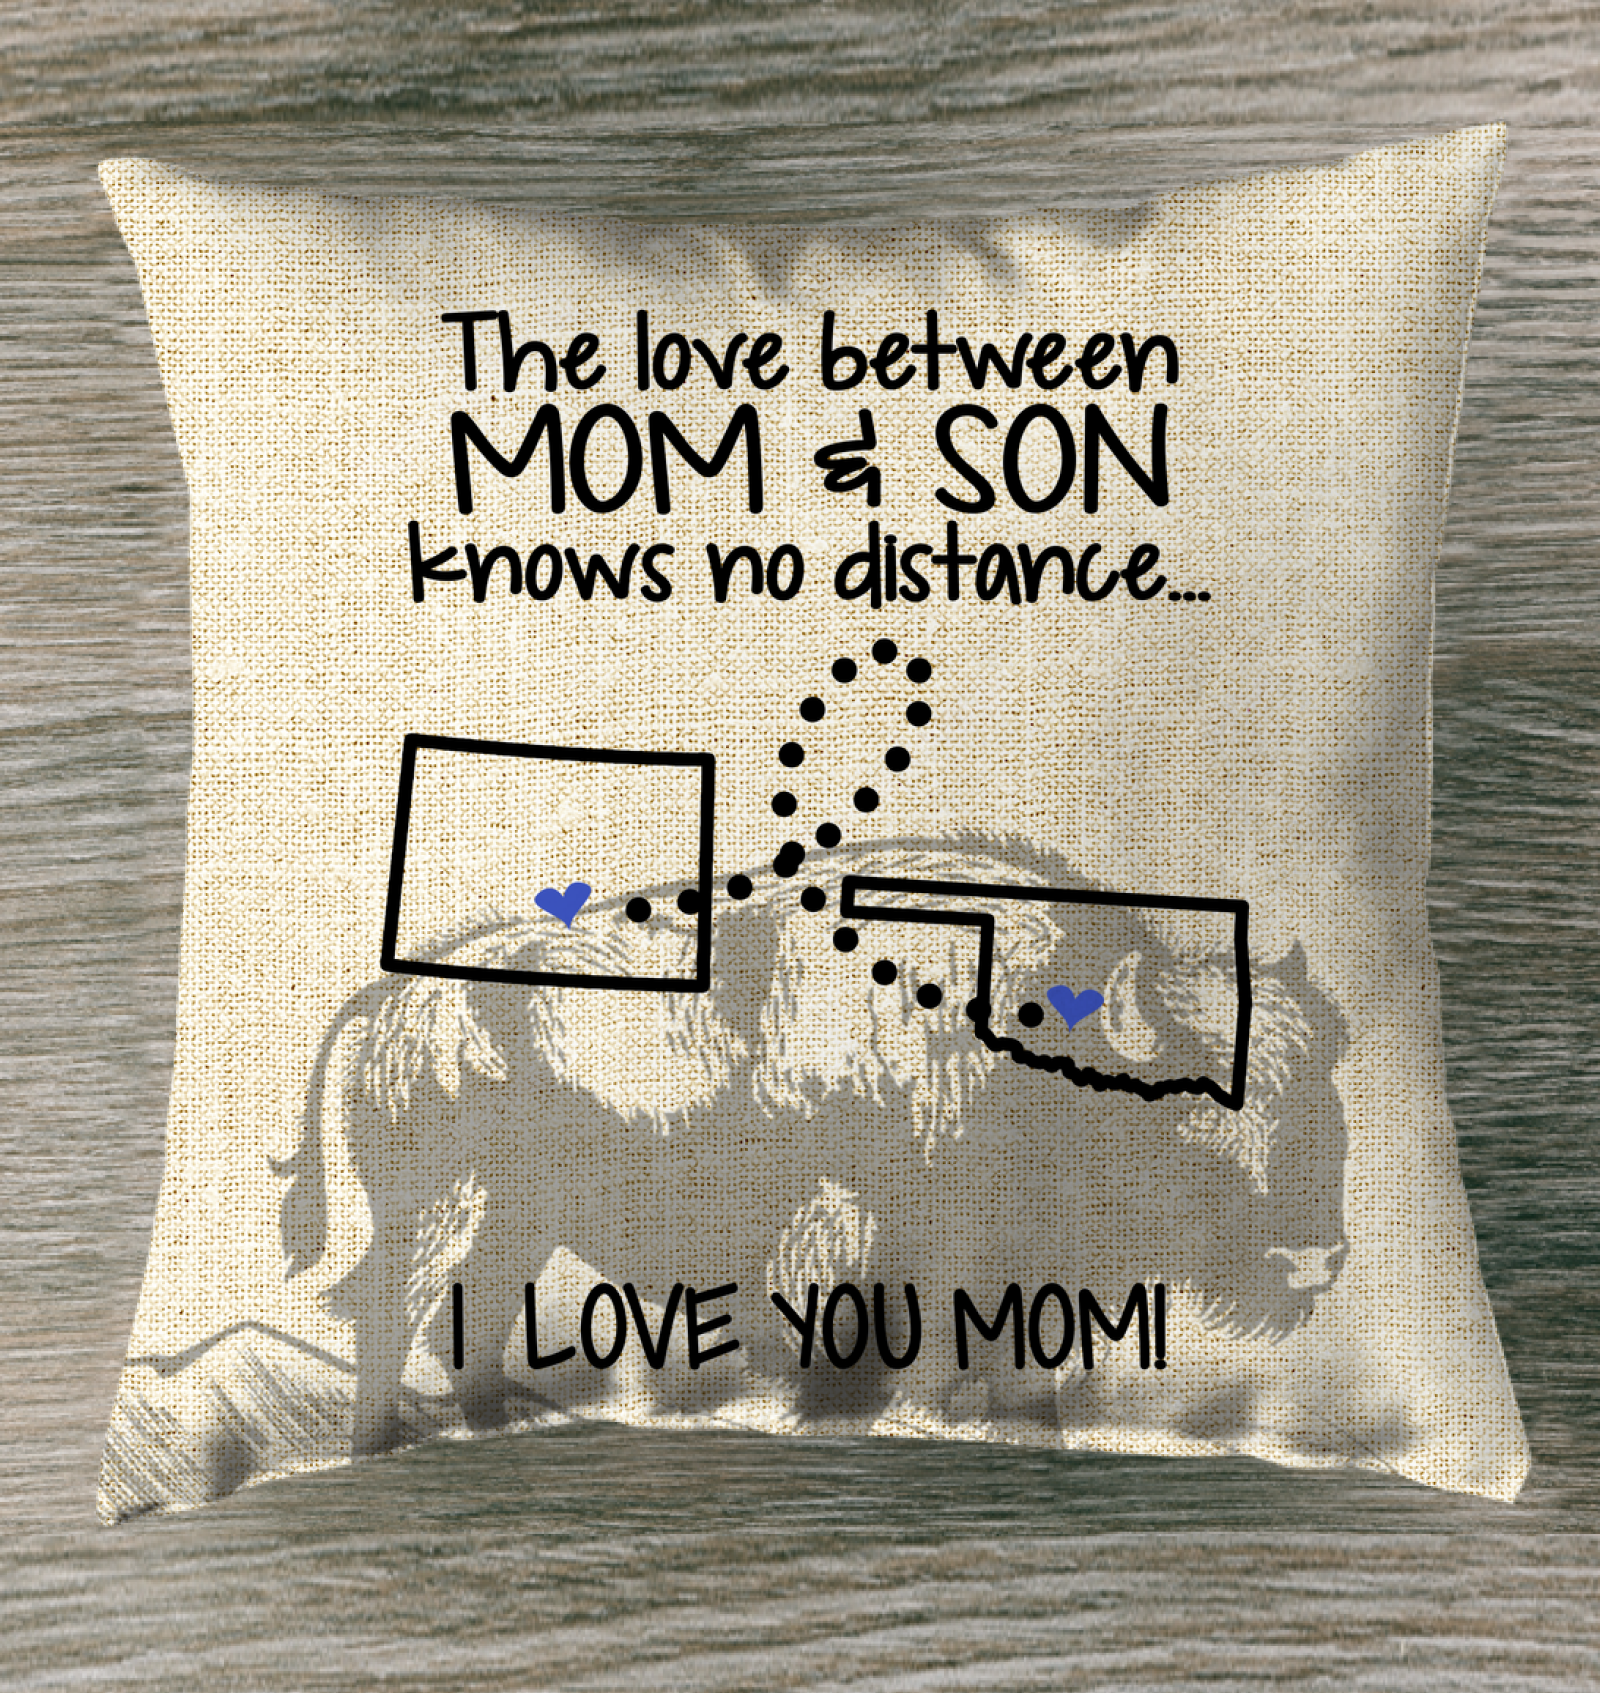 OKLAHOMA COLORADO THE LOVE MOM AND SON KNOWS NO DISTANCE